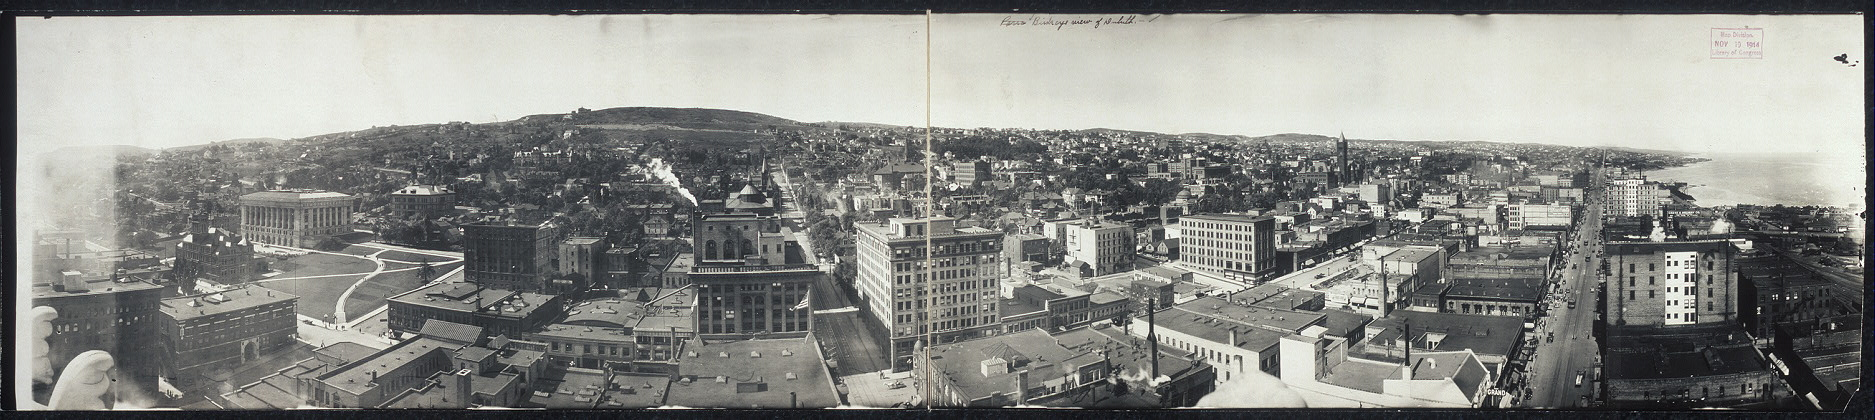 Bird's eye view of Duluth Minnesota, 1914, via Library of Congress